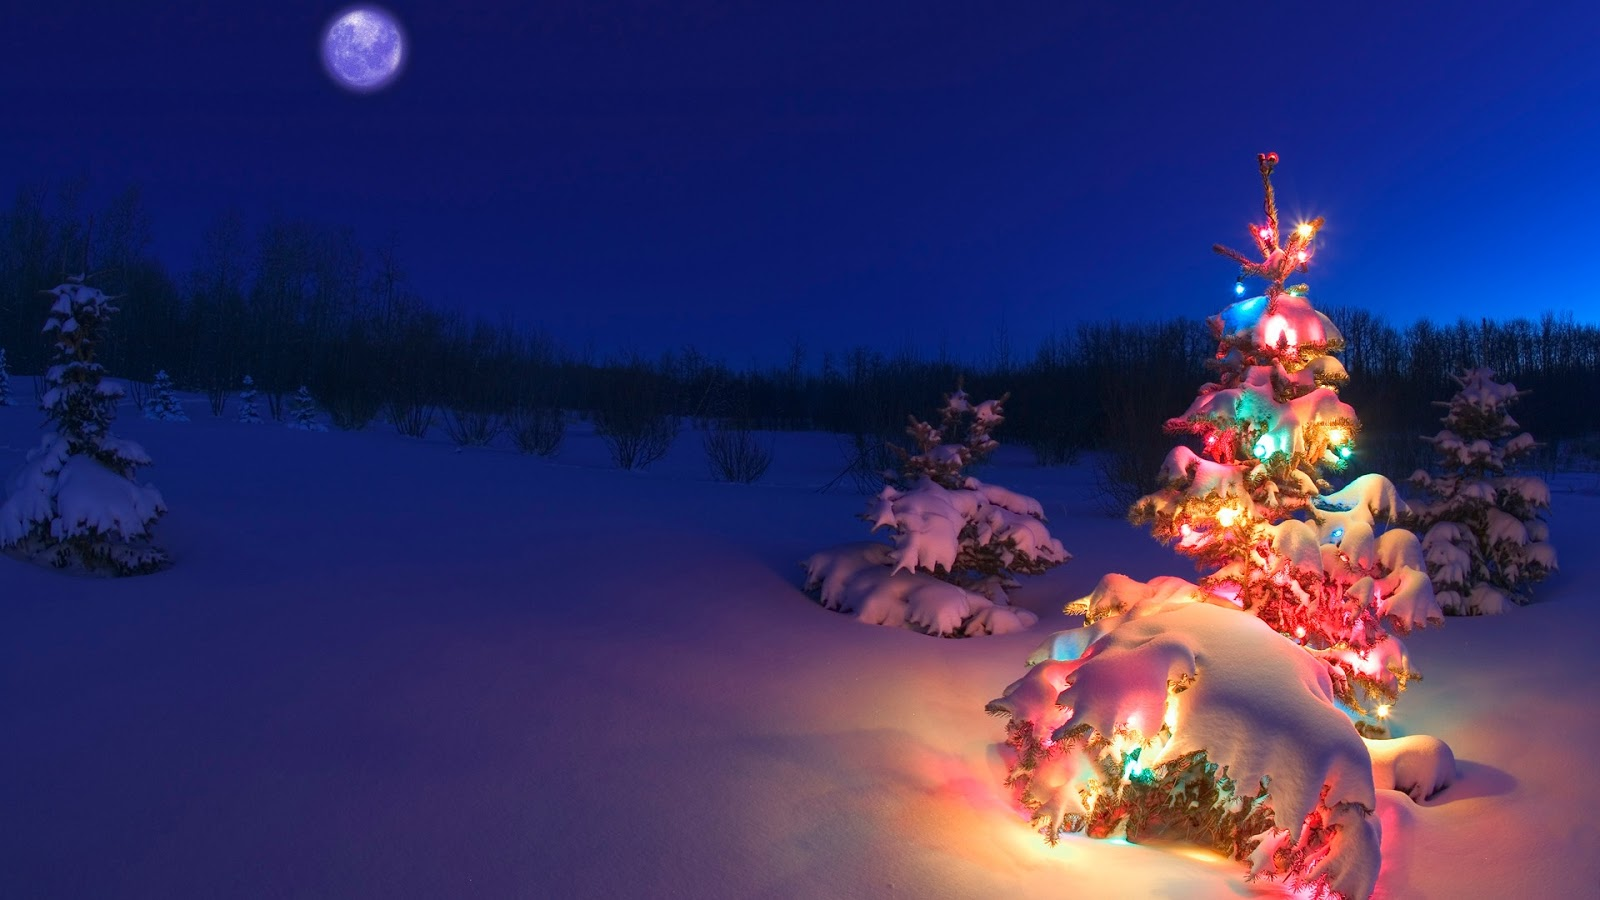 Merry Christmas HD Wallpapers Image Greetings [ Download]] 1600x900